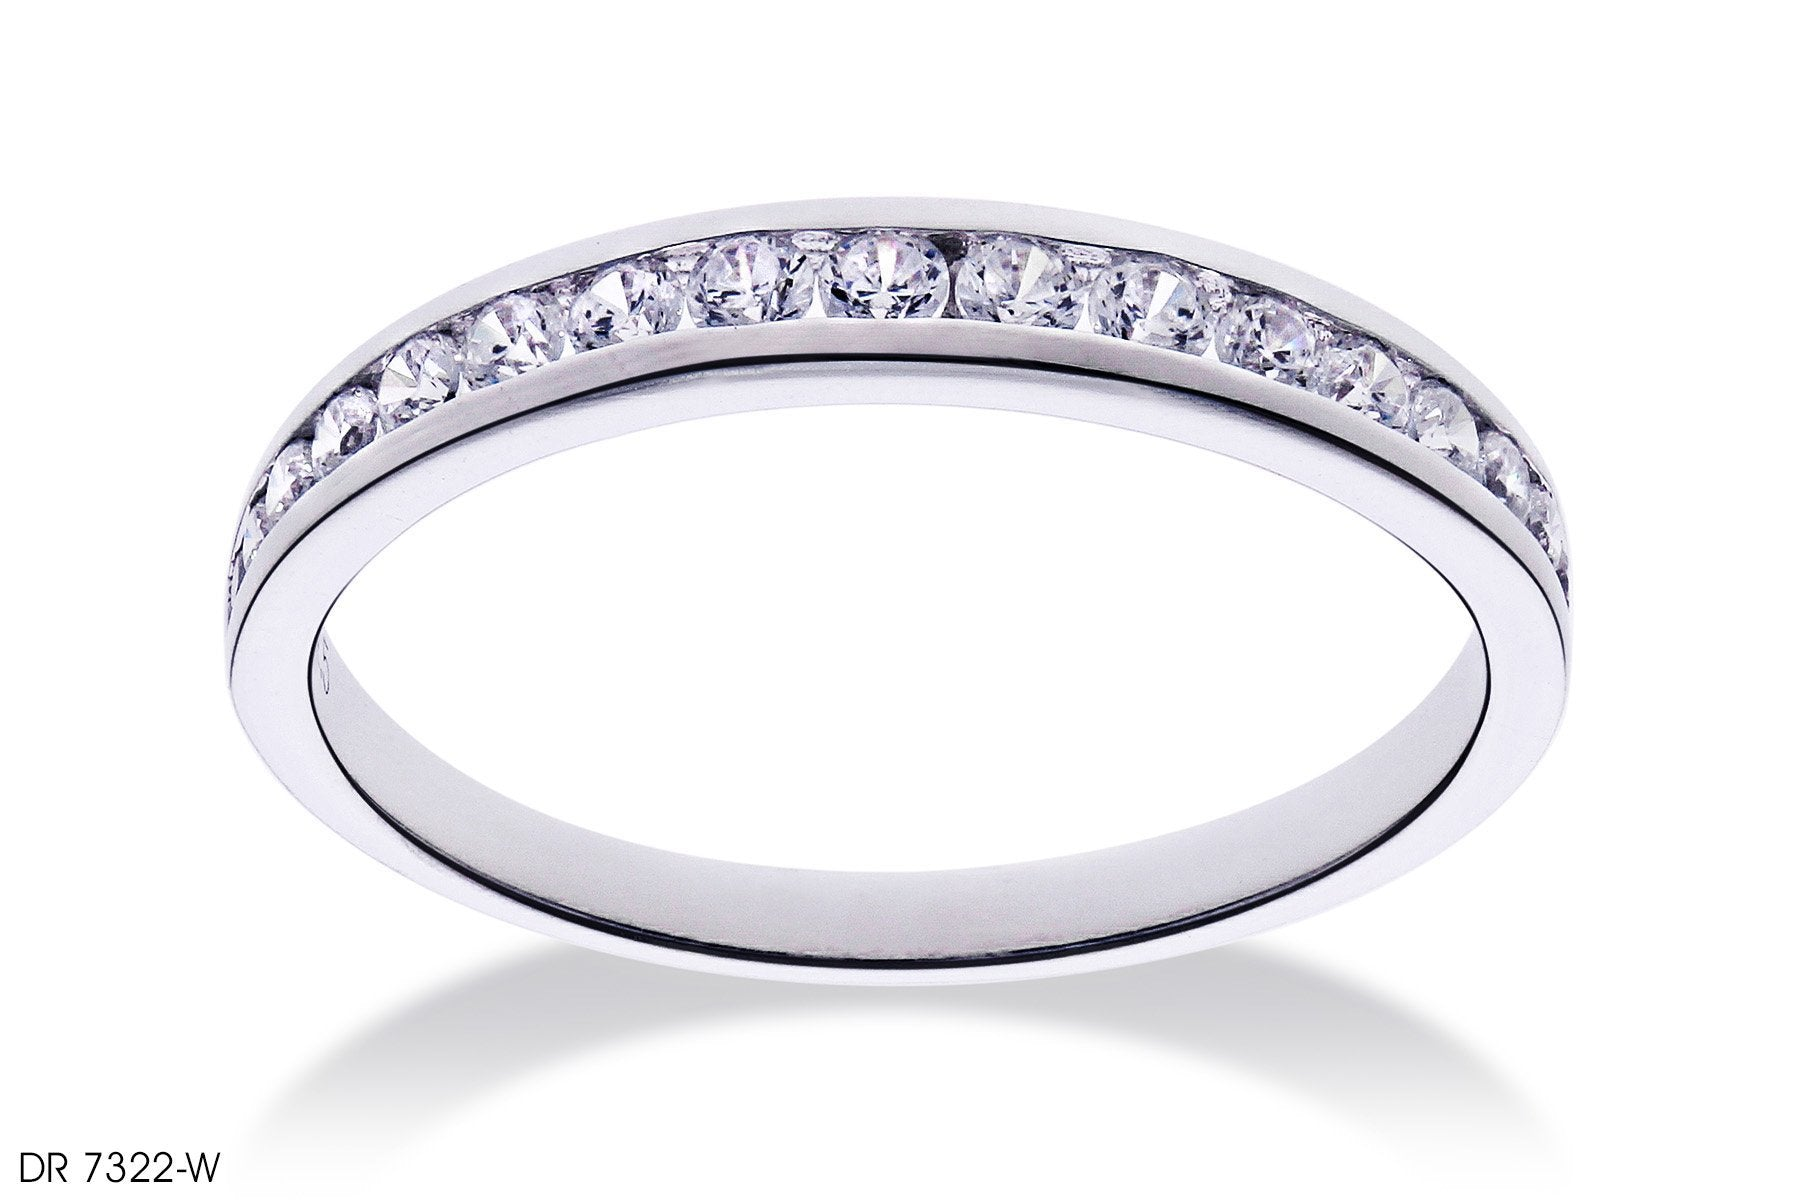 Channel Setting Diamond Wedding Band in 18k White Gold